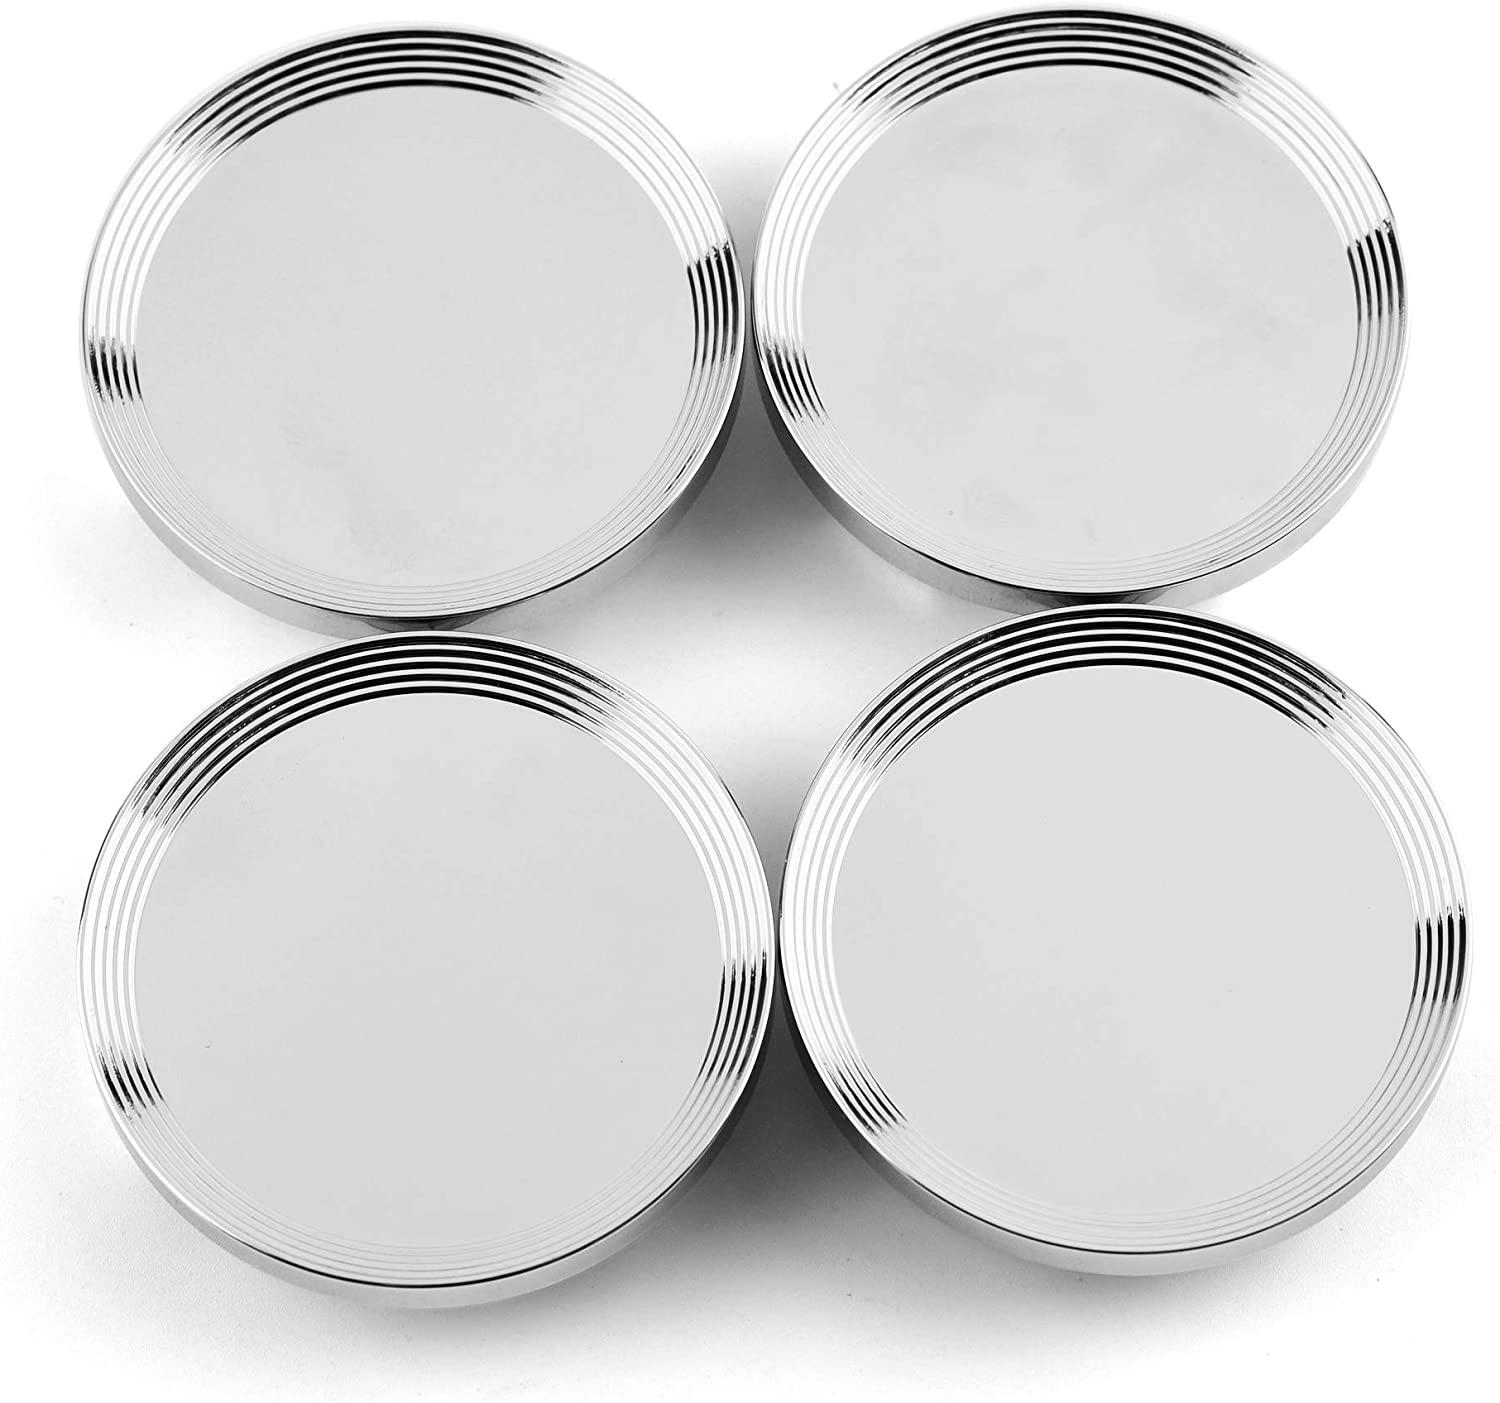 CC RTRHINOTUNING 66mm 55mm Chrome Silver Car Wheel Center Hub Caps Set of 4 for Beetle 2017 2017